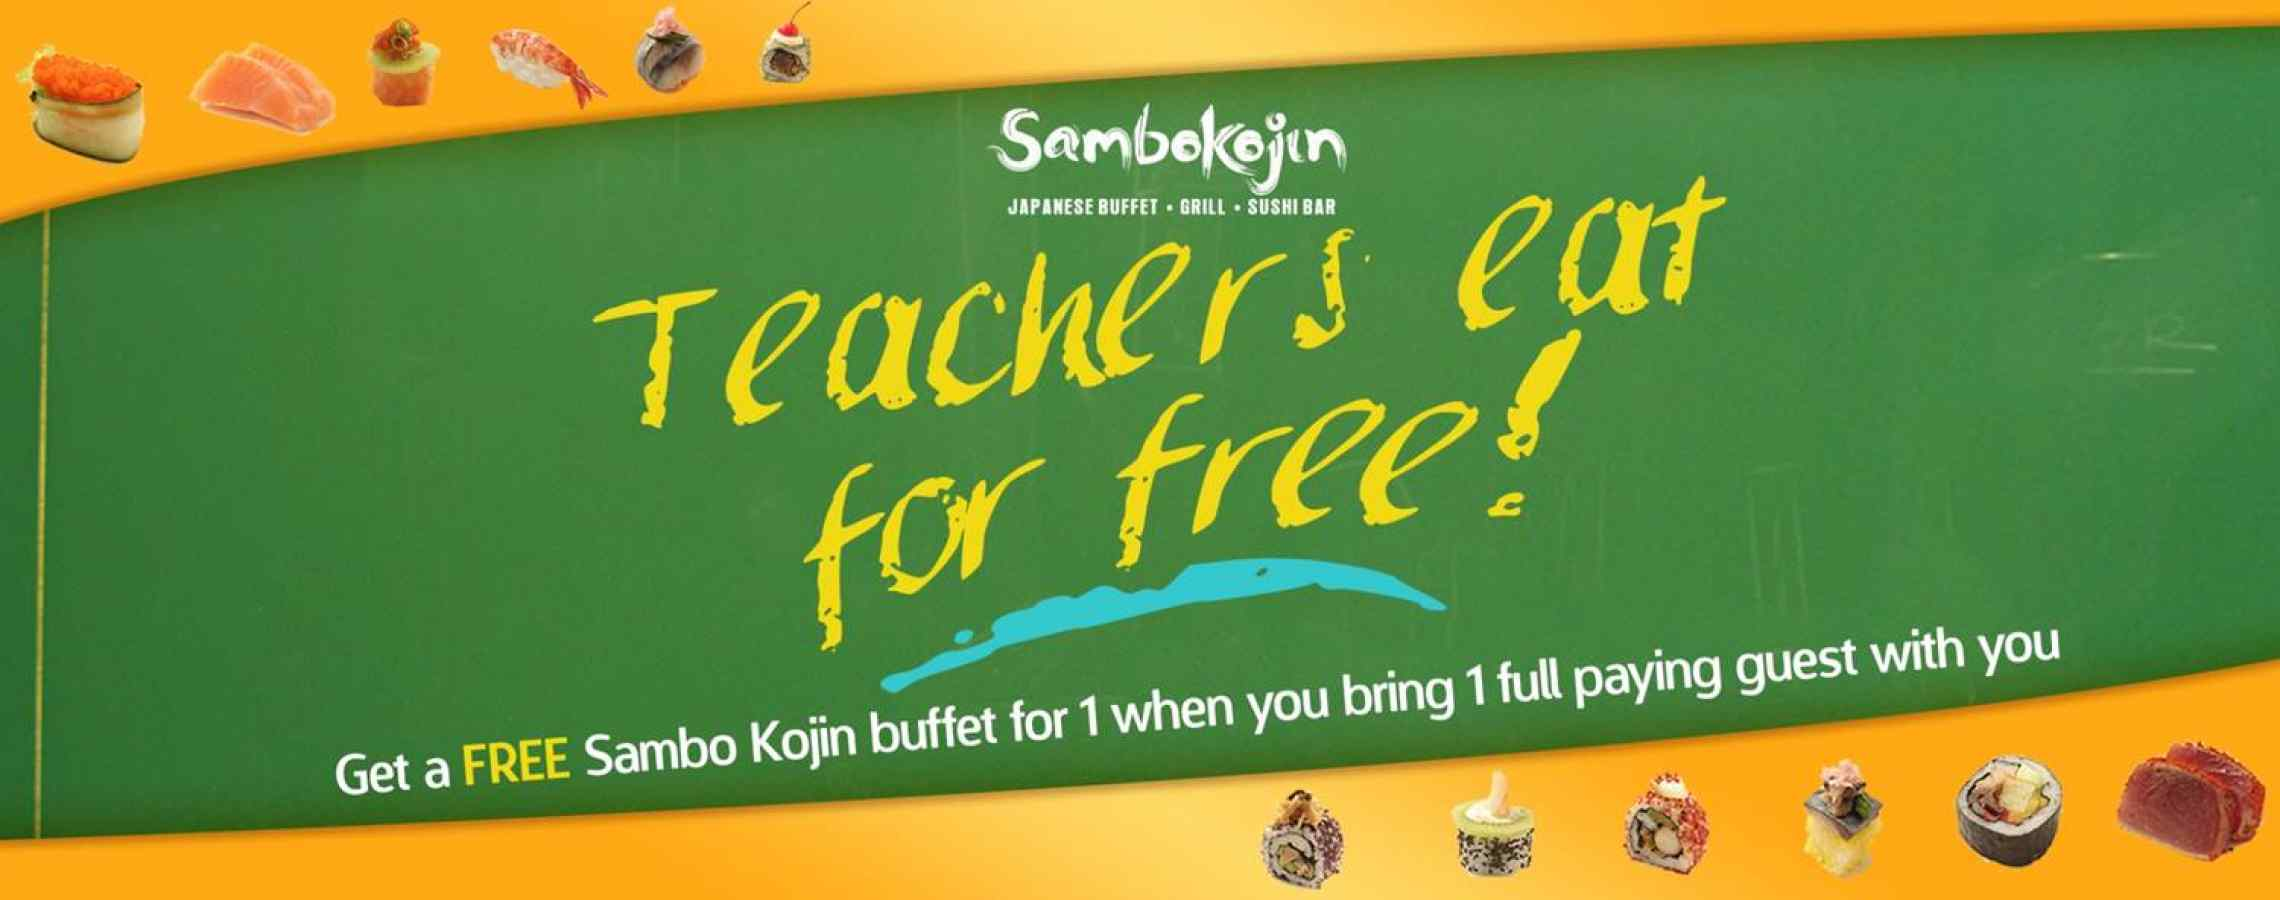 Teachers Eat For Free!